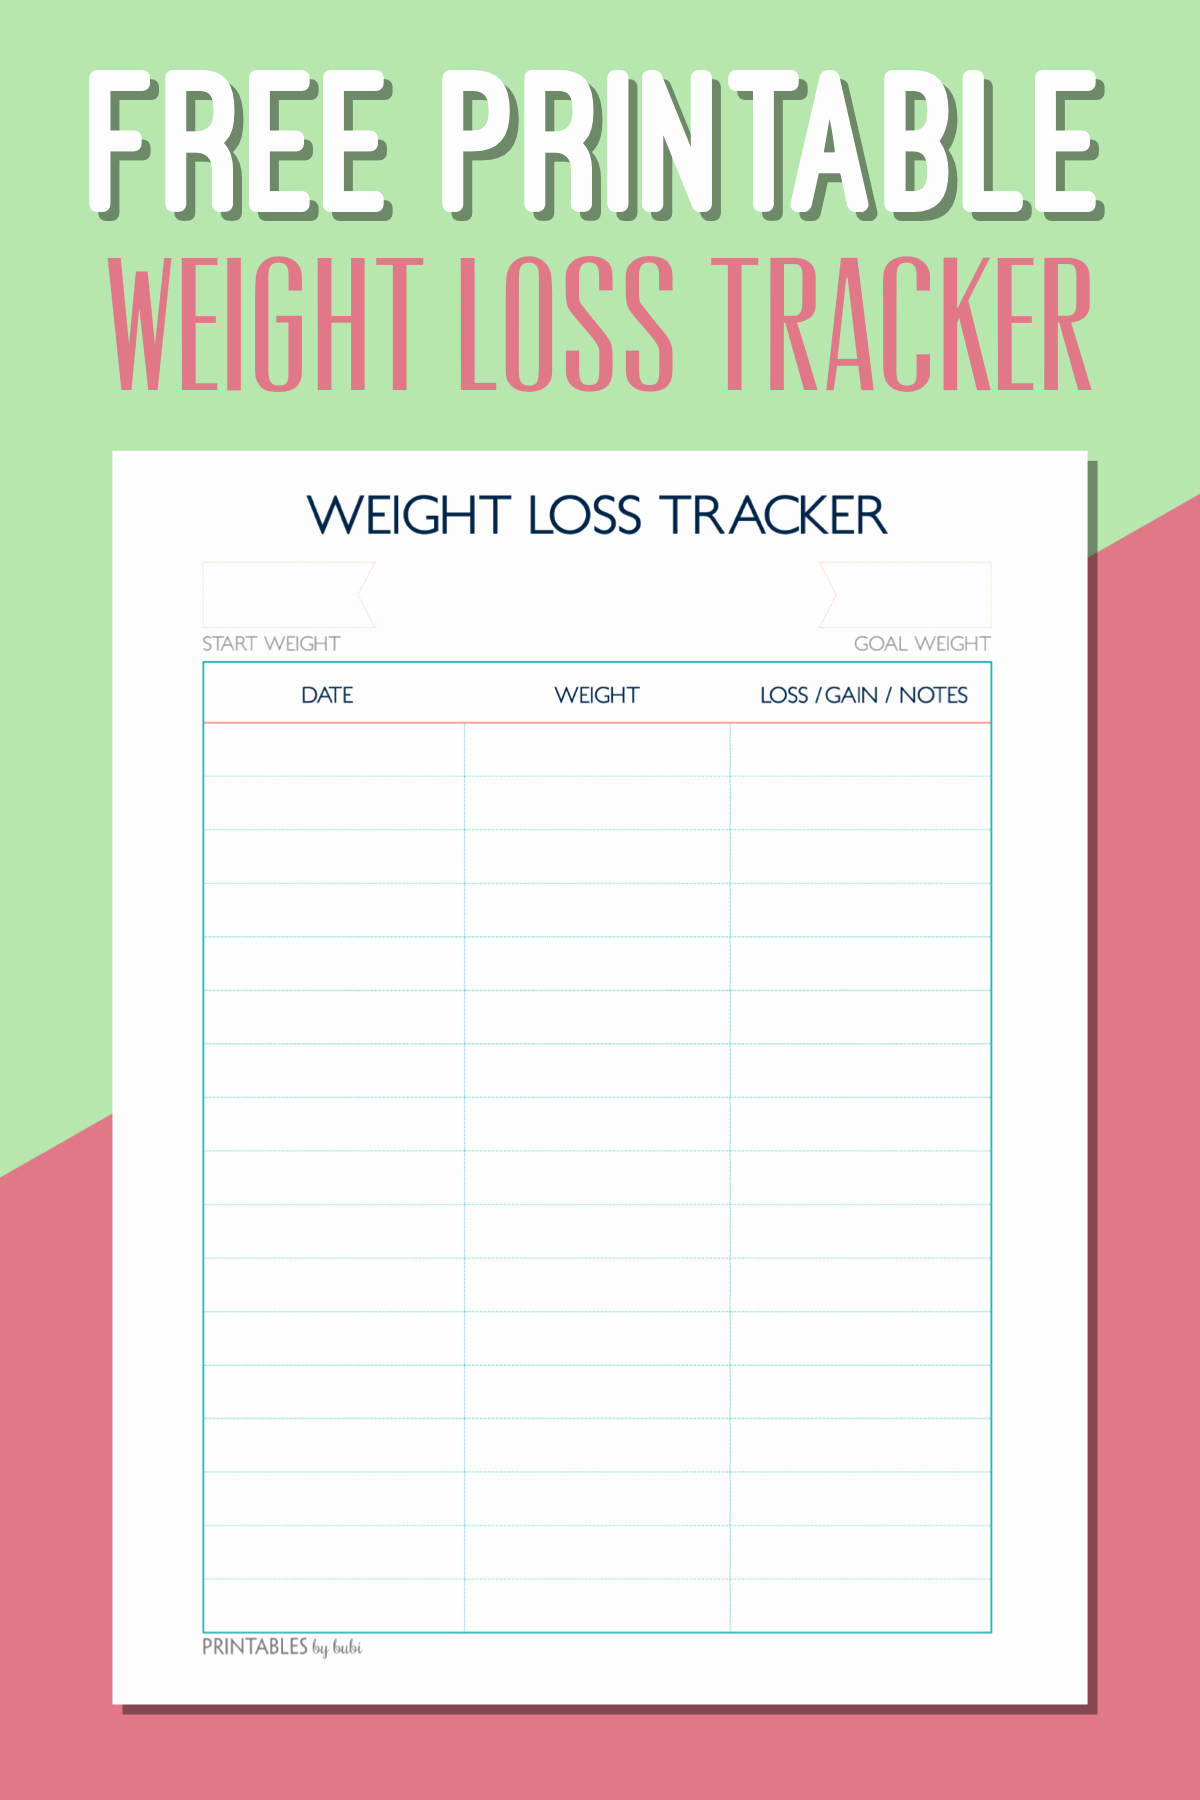 Printable Weight Loss Chart Awesome Free Printable Weight Loss Tracker – Instant Download Pdf